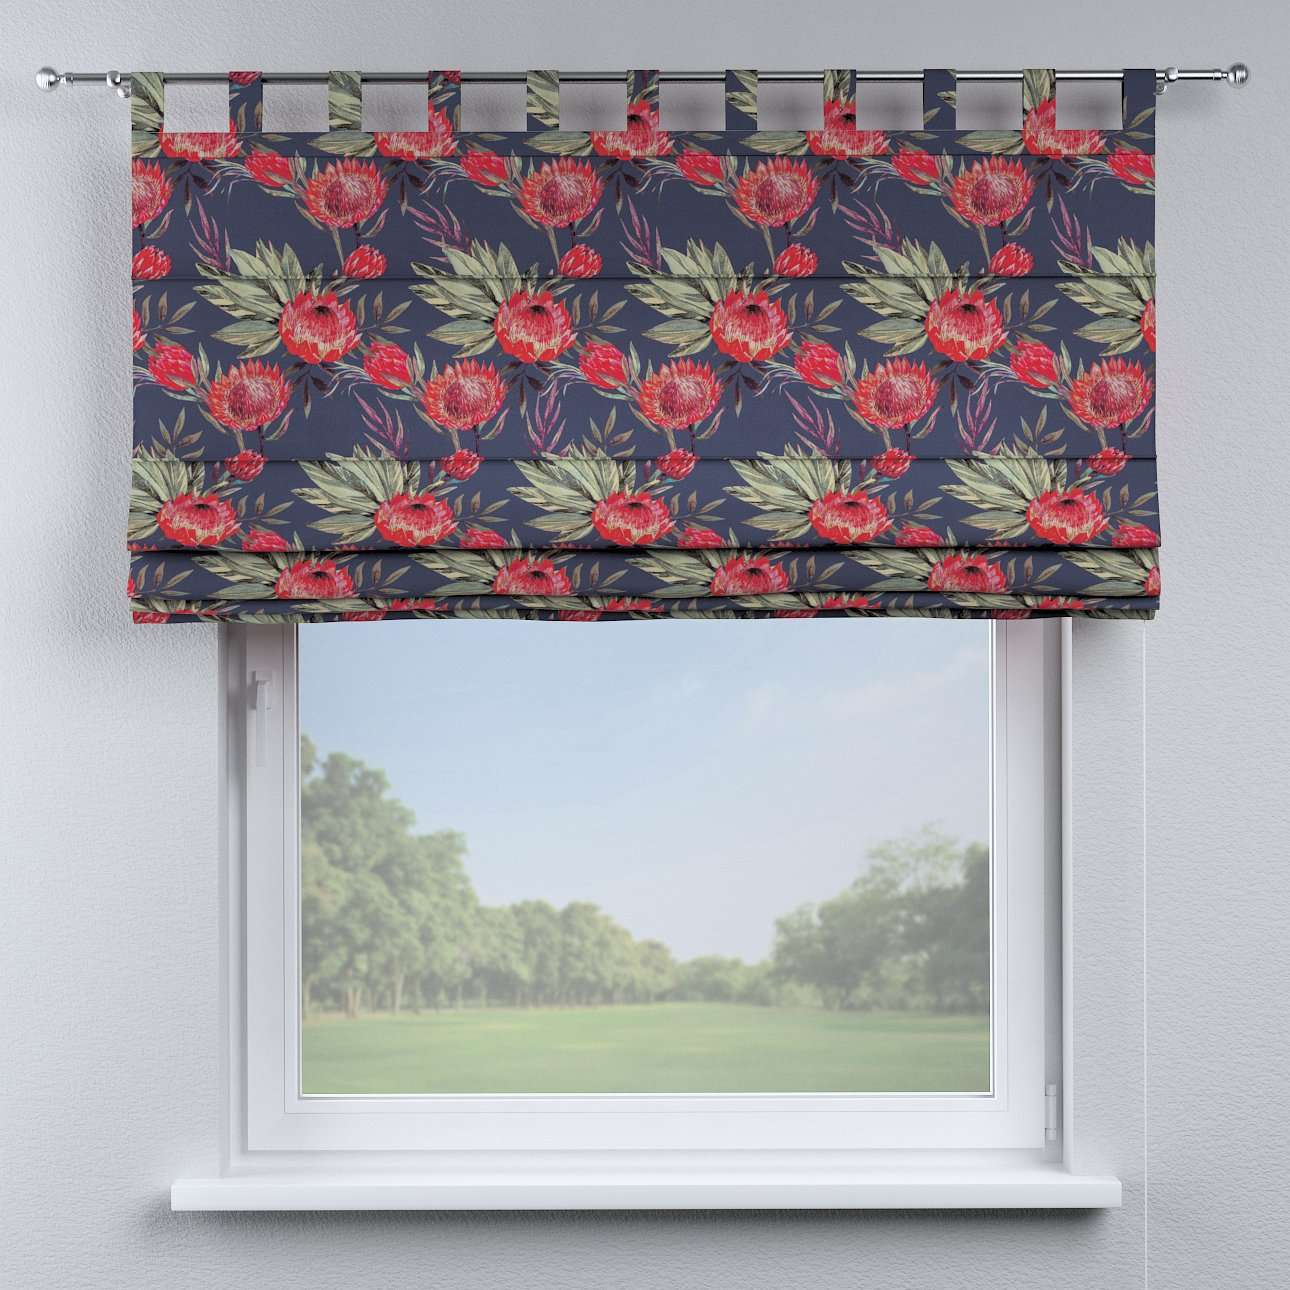 Verona tab top roman blind in collection New Art, fabric: 141-57